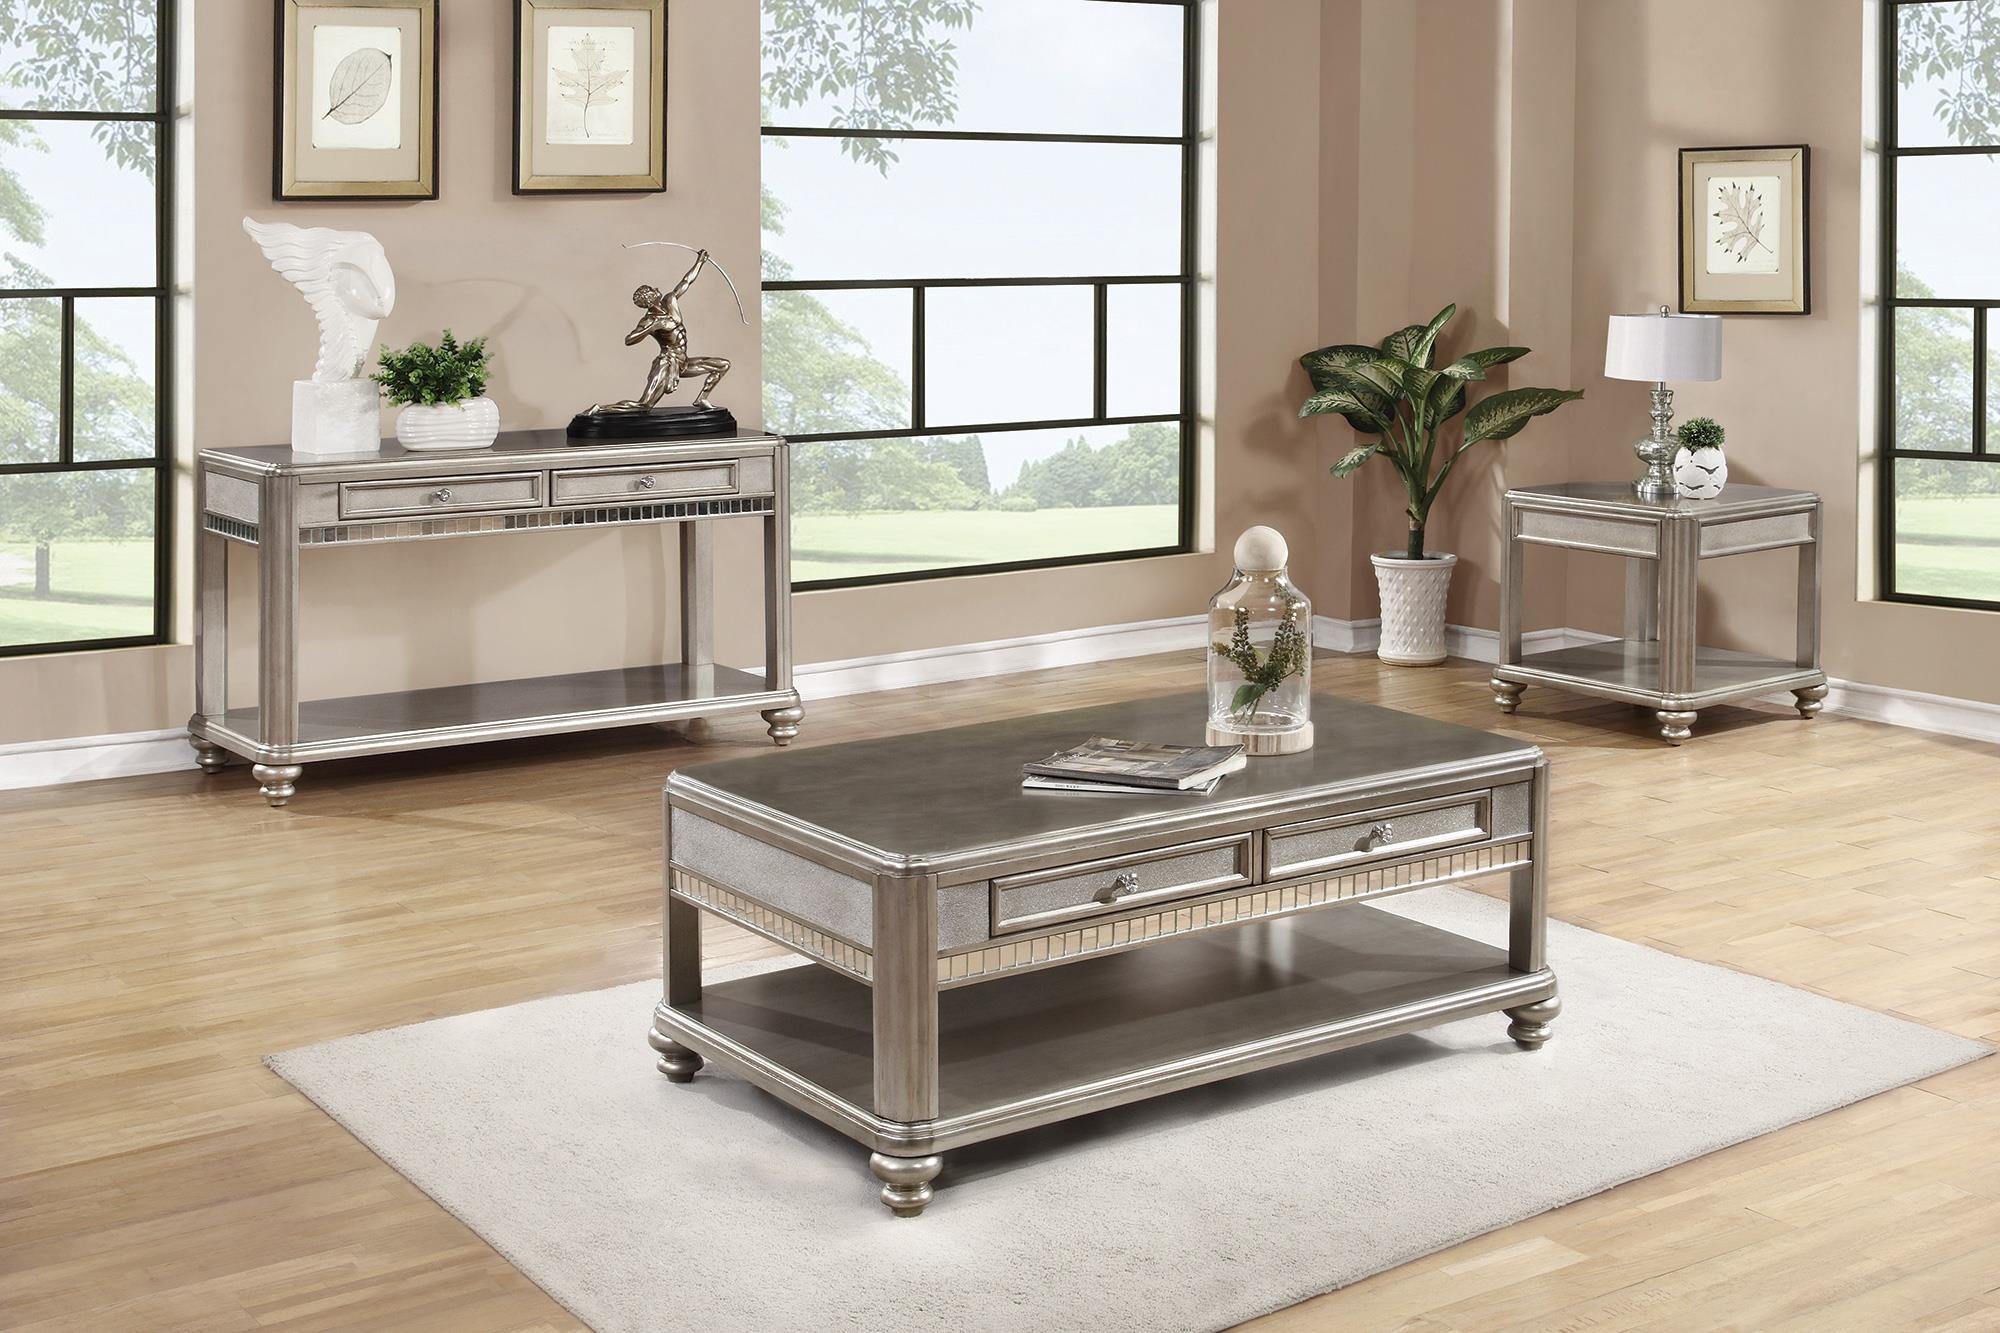 Coaster 70461 end table with shelf value city furniture end tables geotapseo Image collections